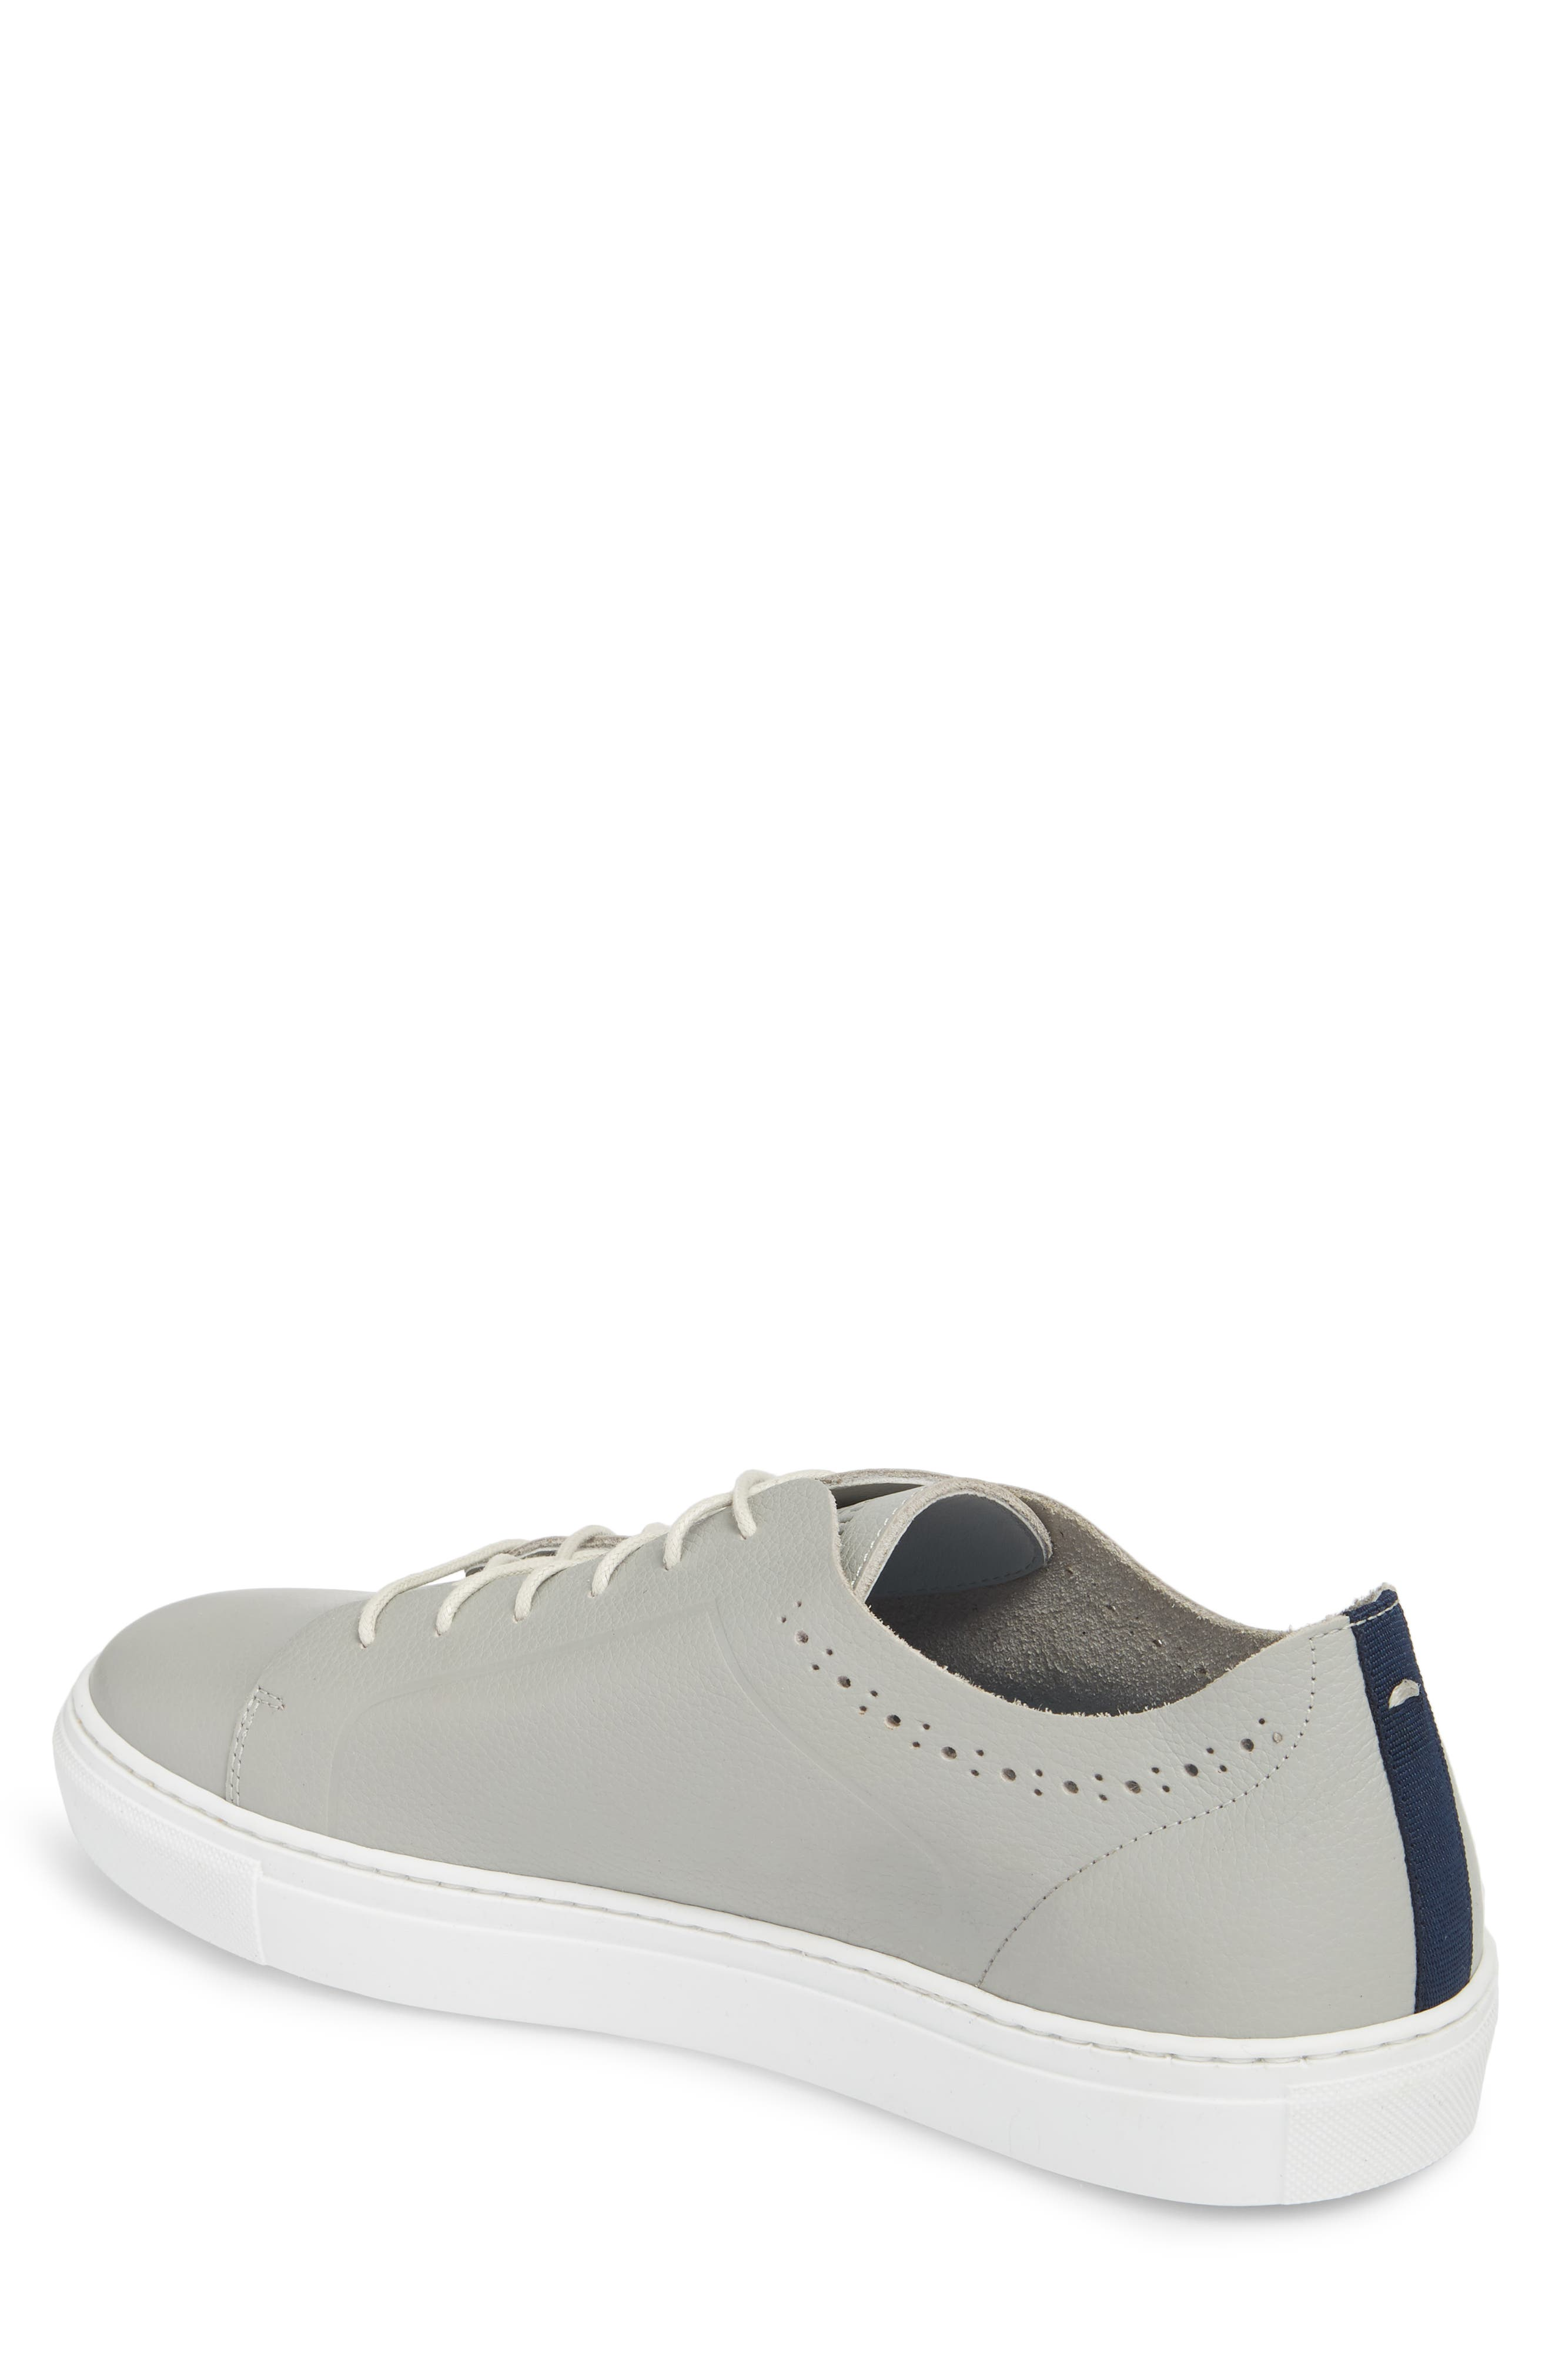 Nowull Brogued Sneaker,                             Alternate thumbnail 2, color,                             LIGHT GREY LEATHER